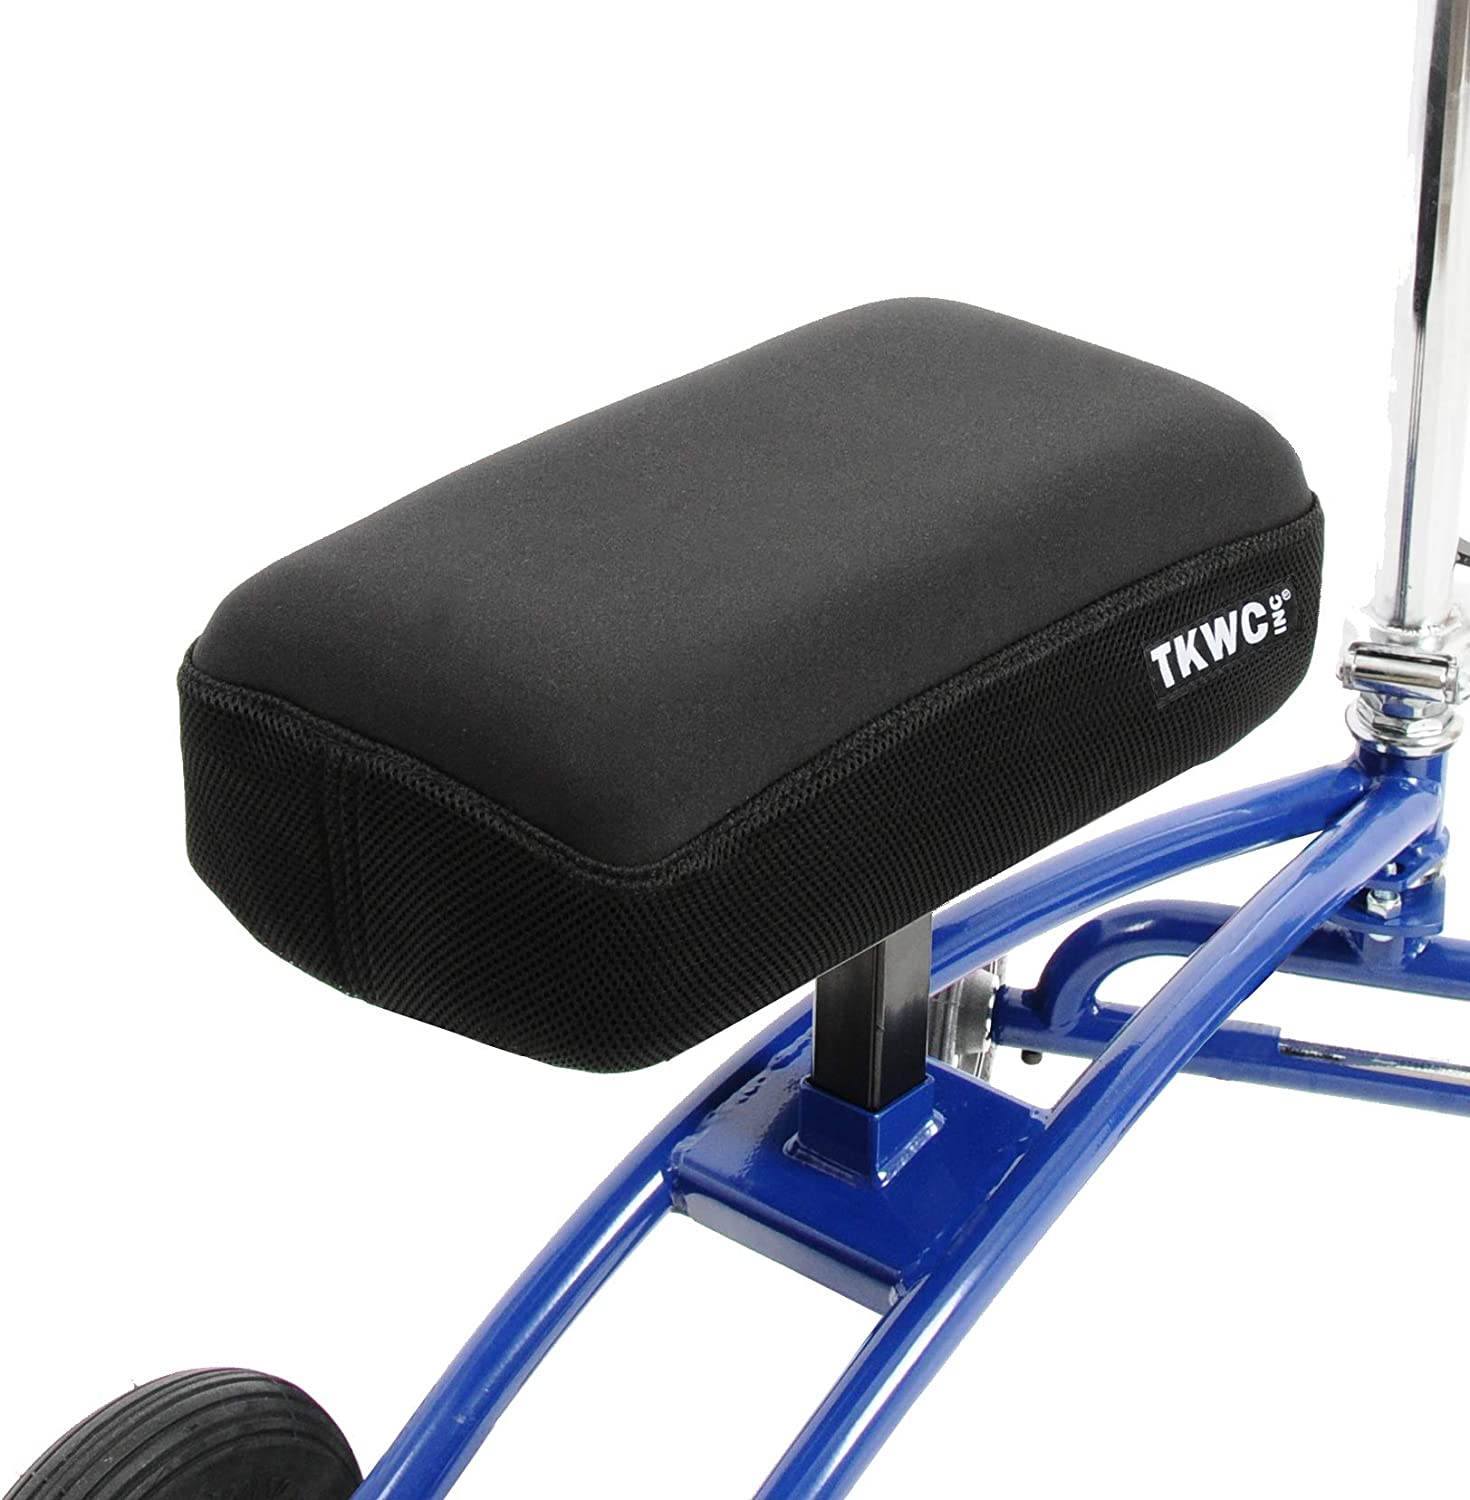 Knee Scooter Memory Foam by TKWC INC - Two Inch Thick Memory Foam Knee Pad and Cover - Fits Most Knee Walker Models